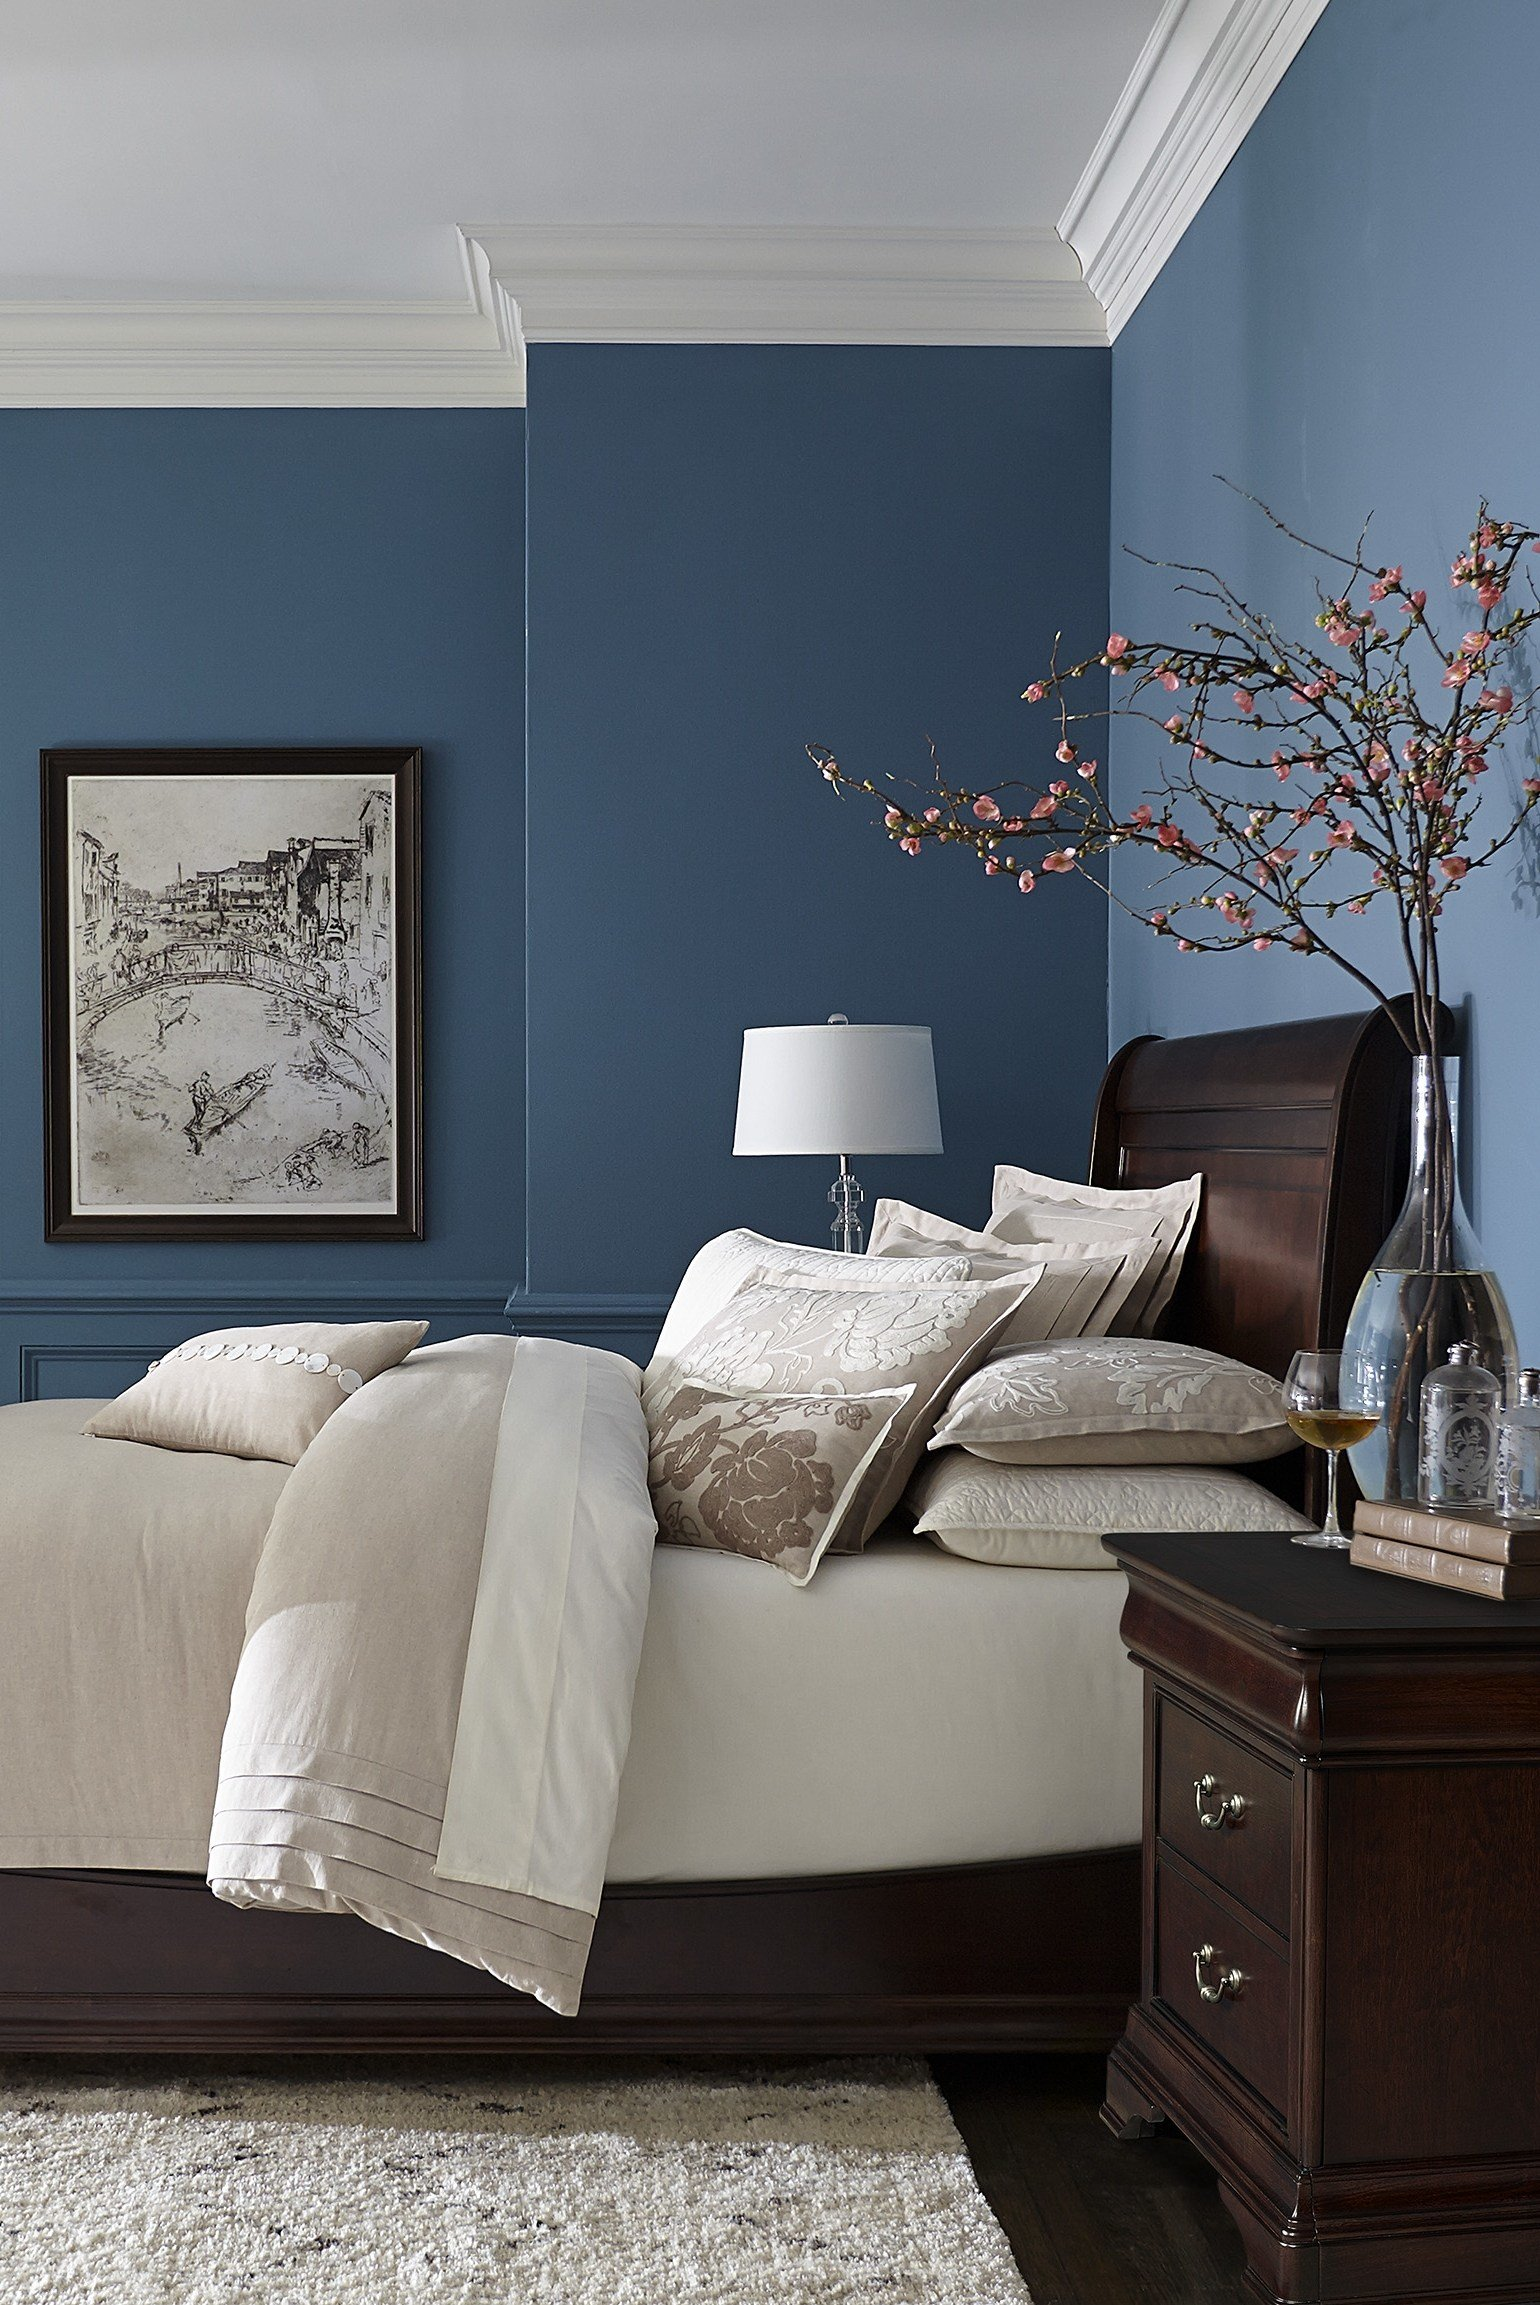 Best 15 Best Collection Of Bedroom Framed Wall Art With Pictures